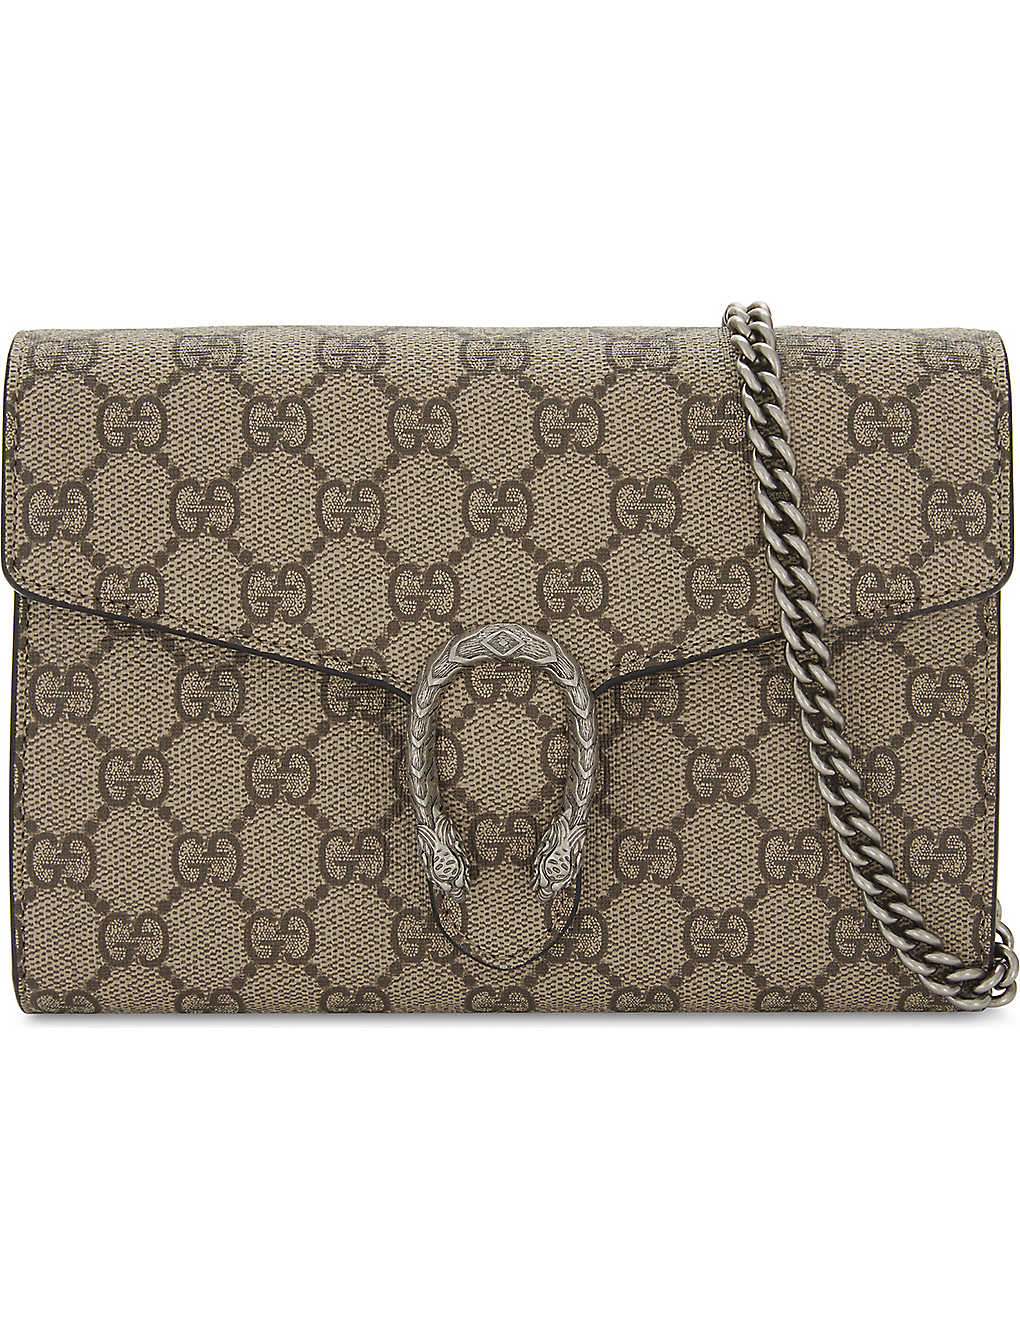 0dc01b959d5 ... Dionysus GG Supreme wallet-on-chain zoom ...